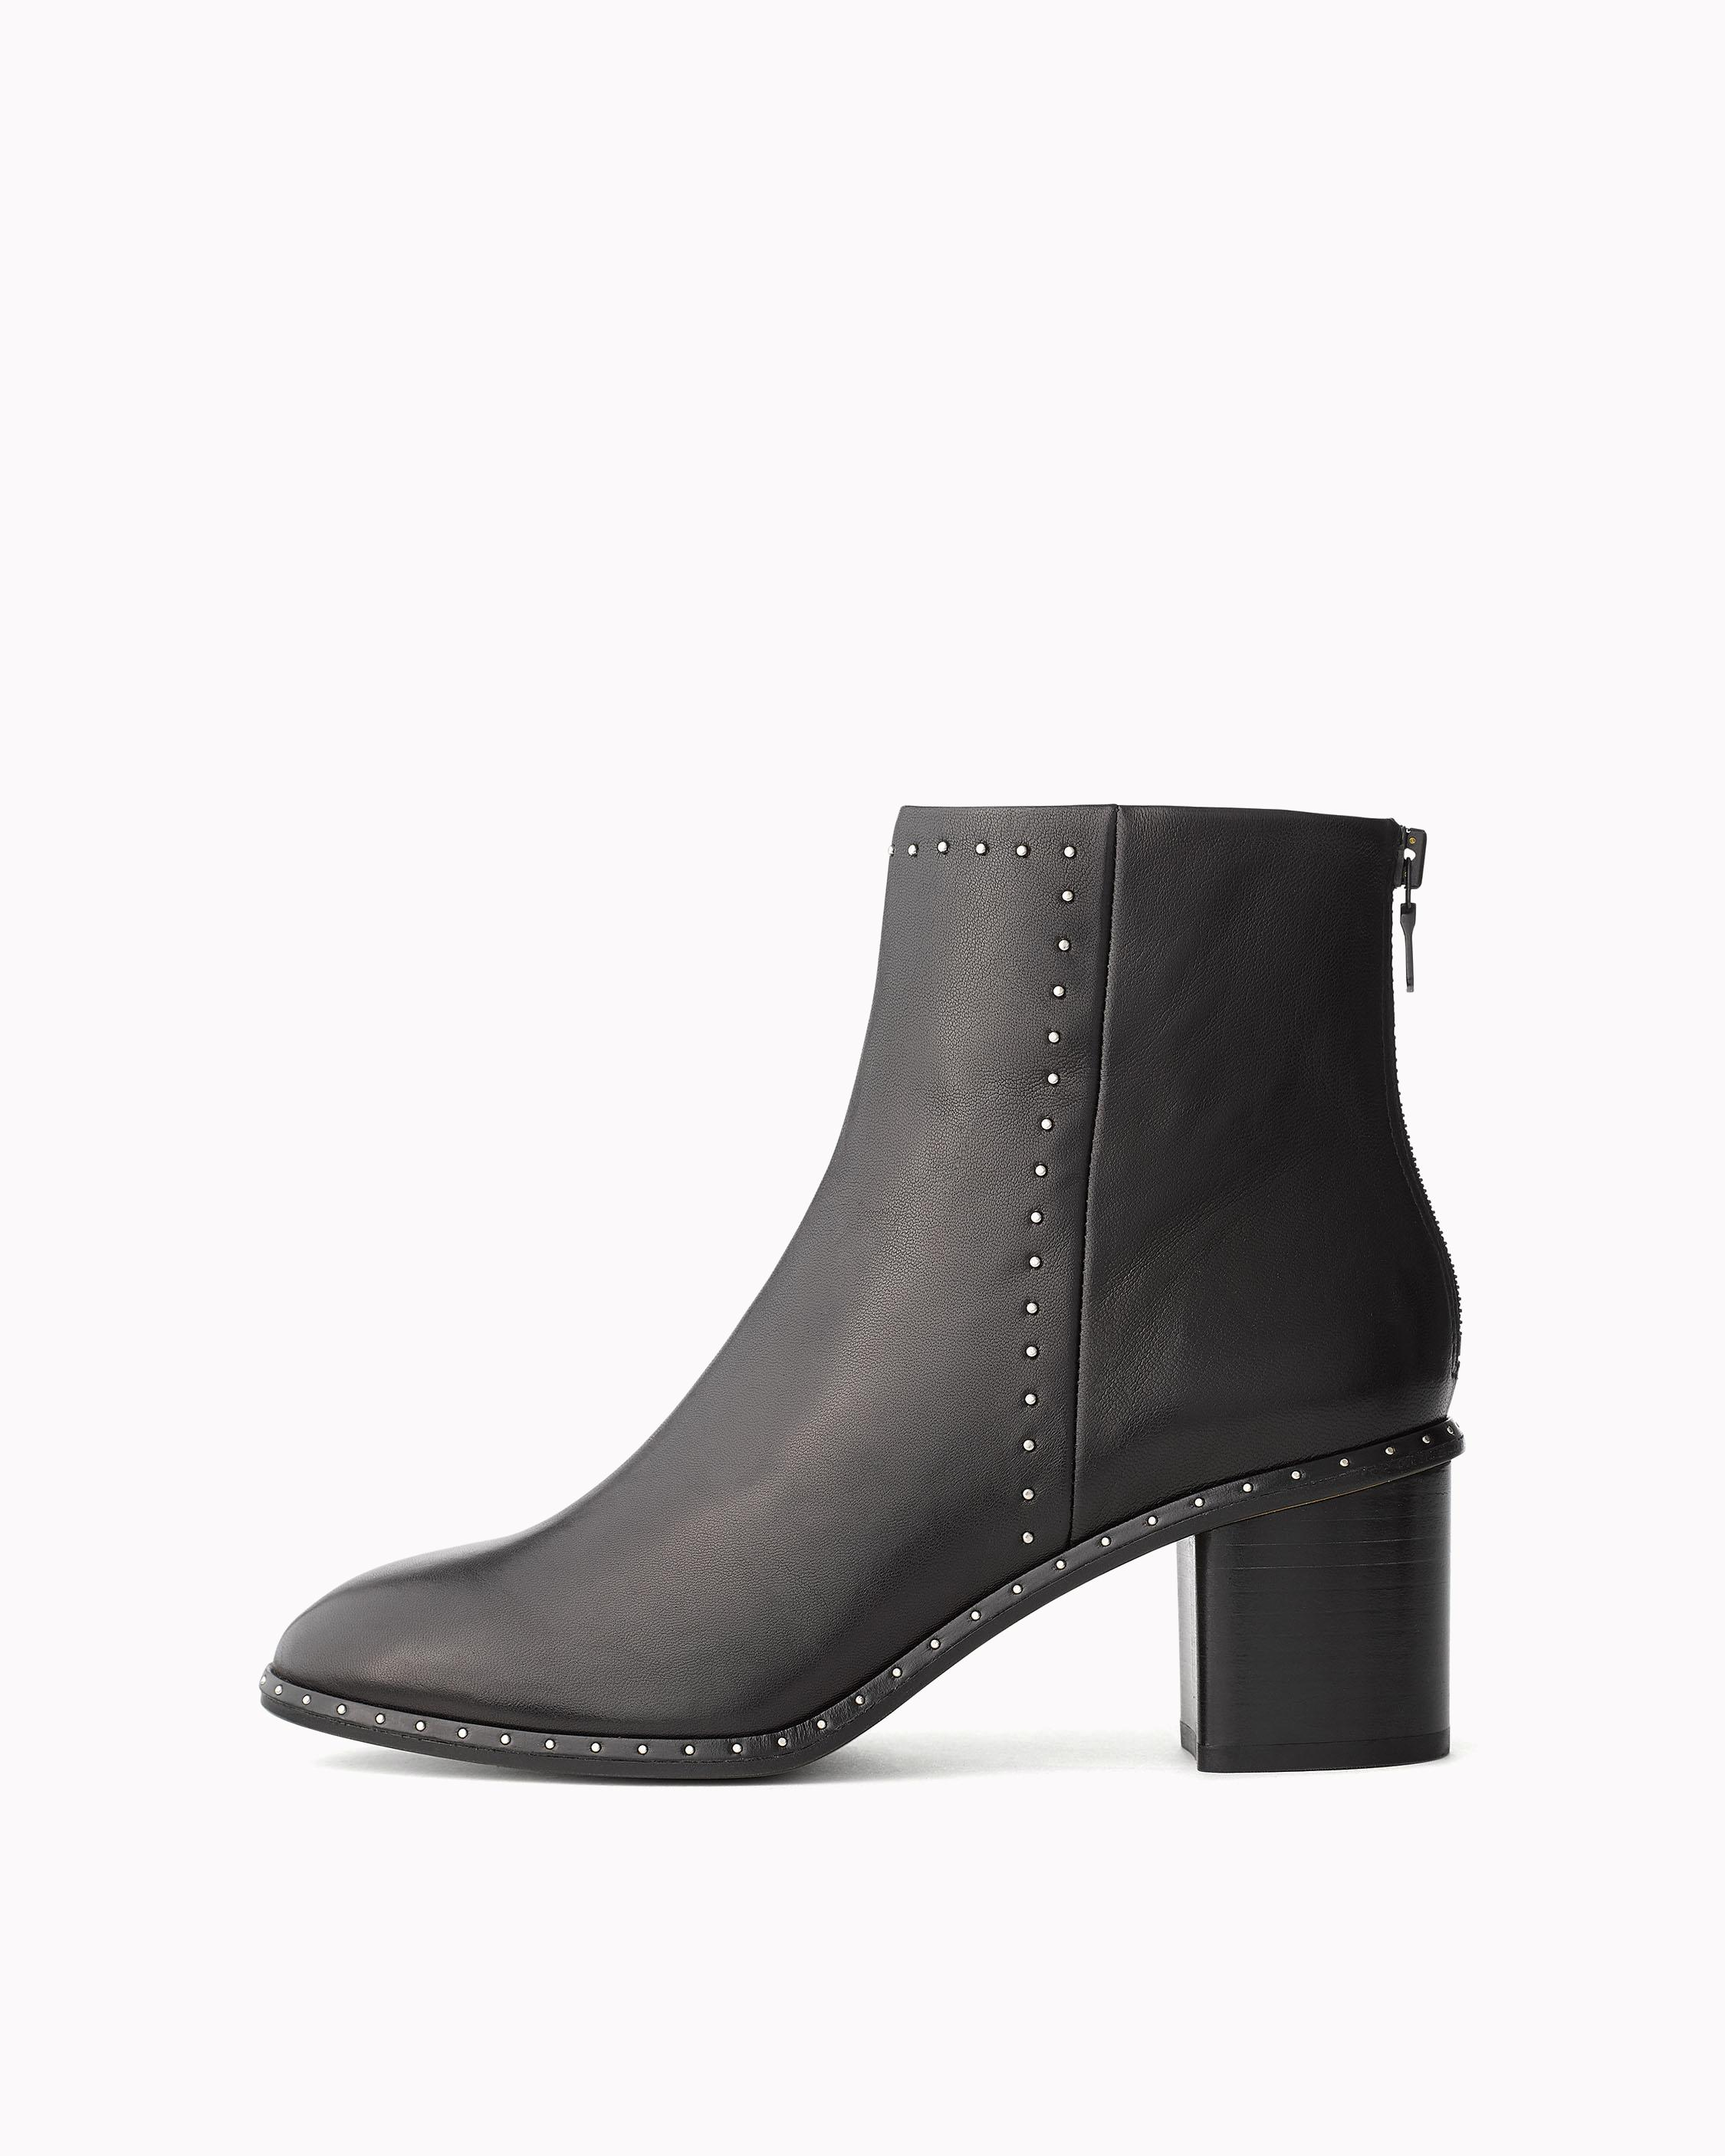 441a47e9d7c Willow Stud Boot | Women Footwear | rag & bone